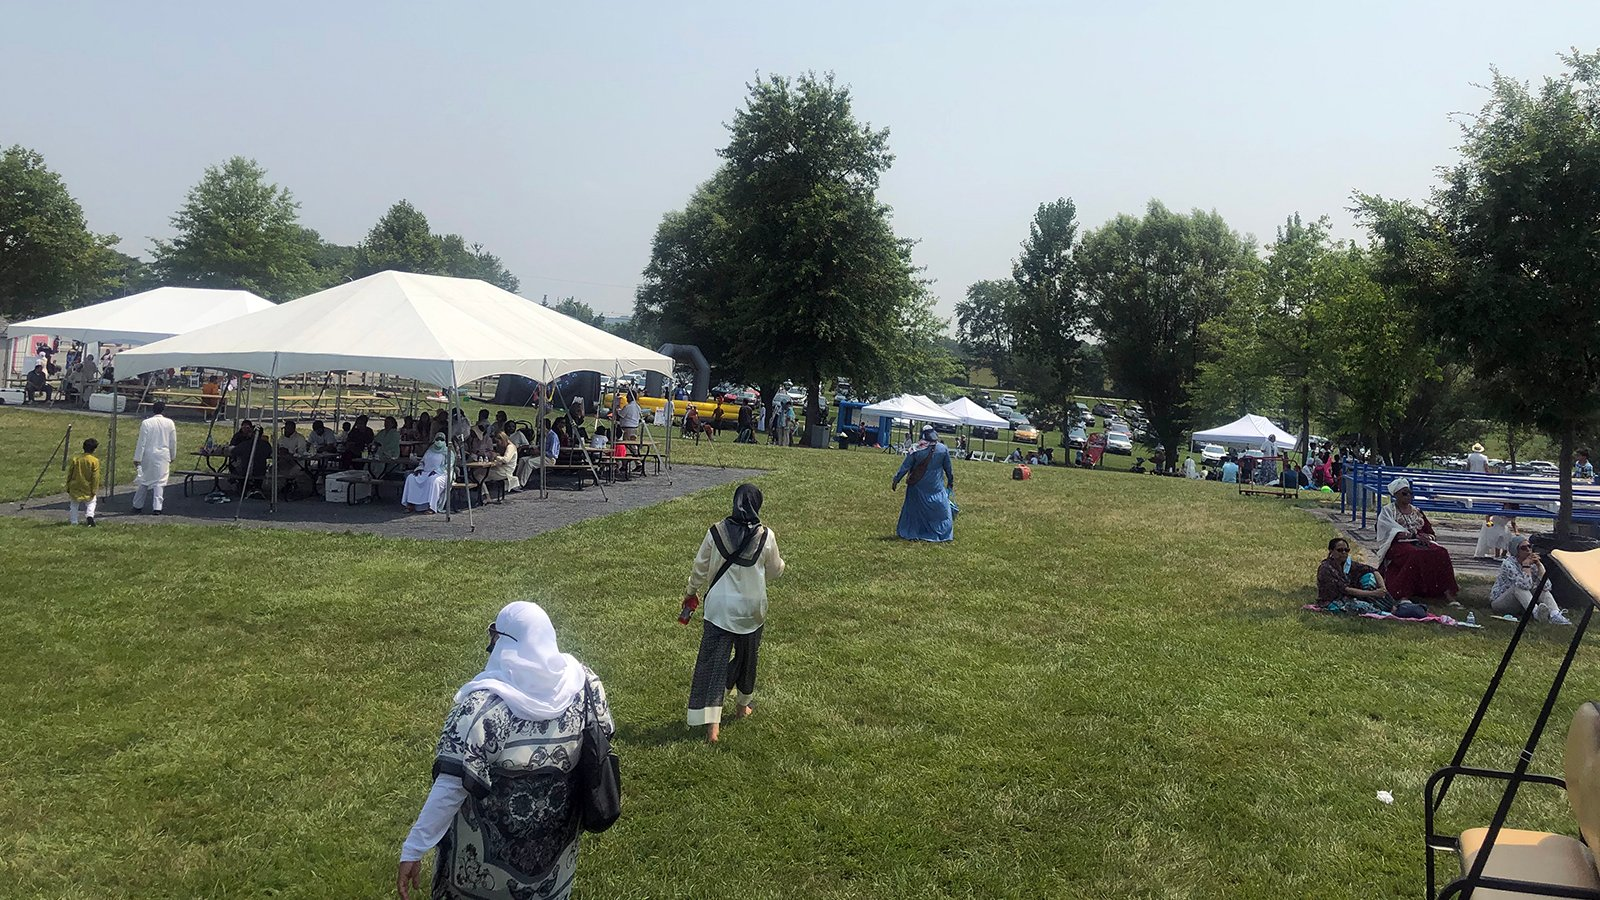 People attend an Eid al-Adha celebration at the Green Meadows Petting Farm in Ijamsville, Maryland, Tuesday, July 20, 2021. Photo courtesy of Laila Tauqeer